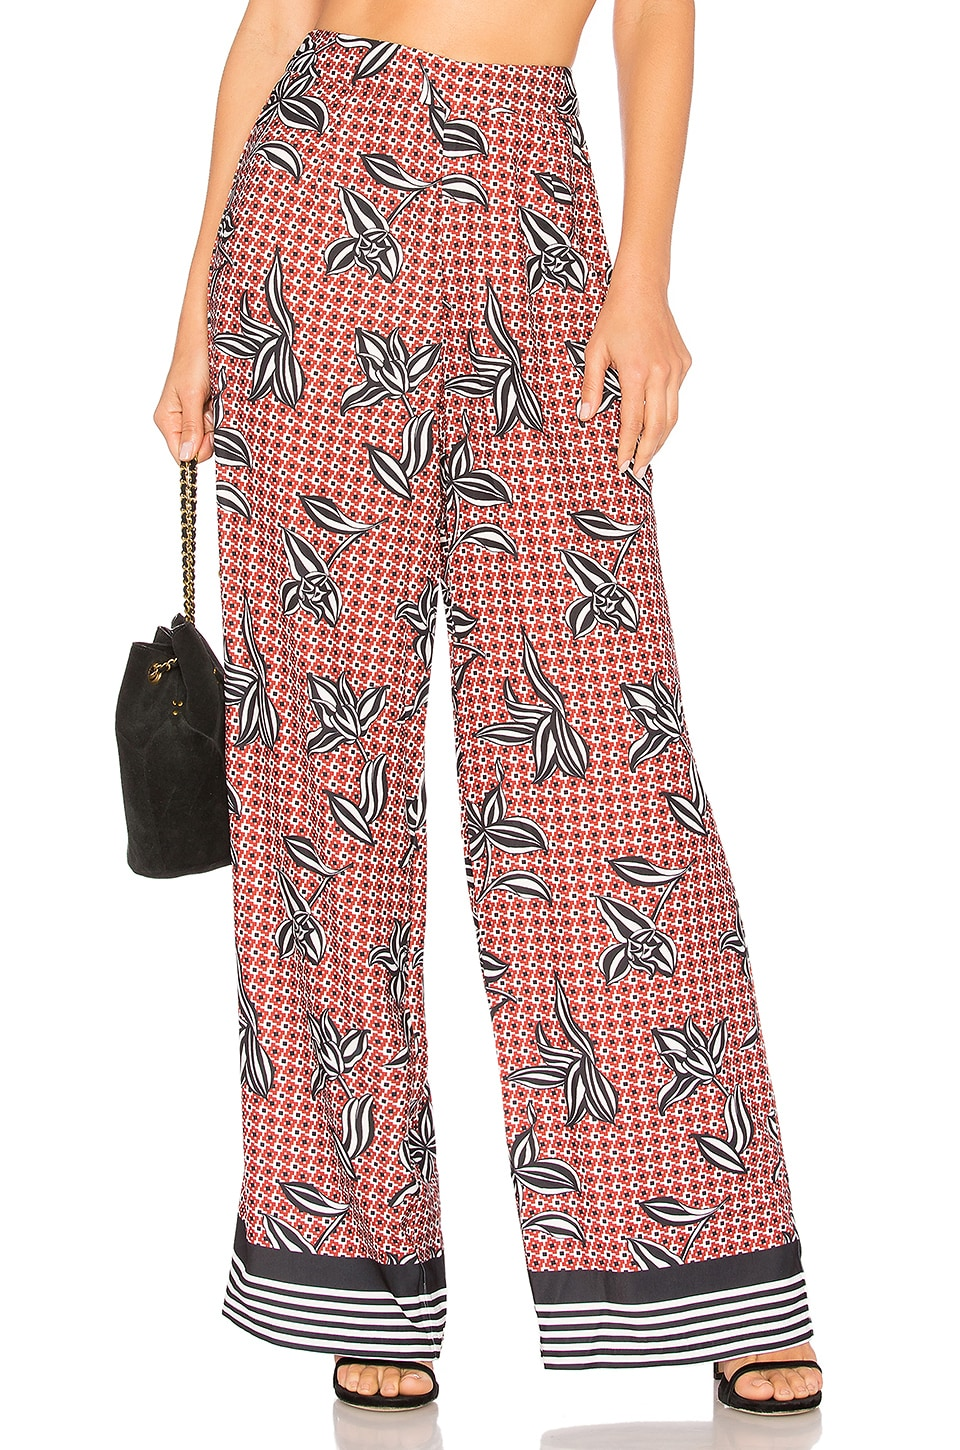 Return Of Infinity Flare Pant